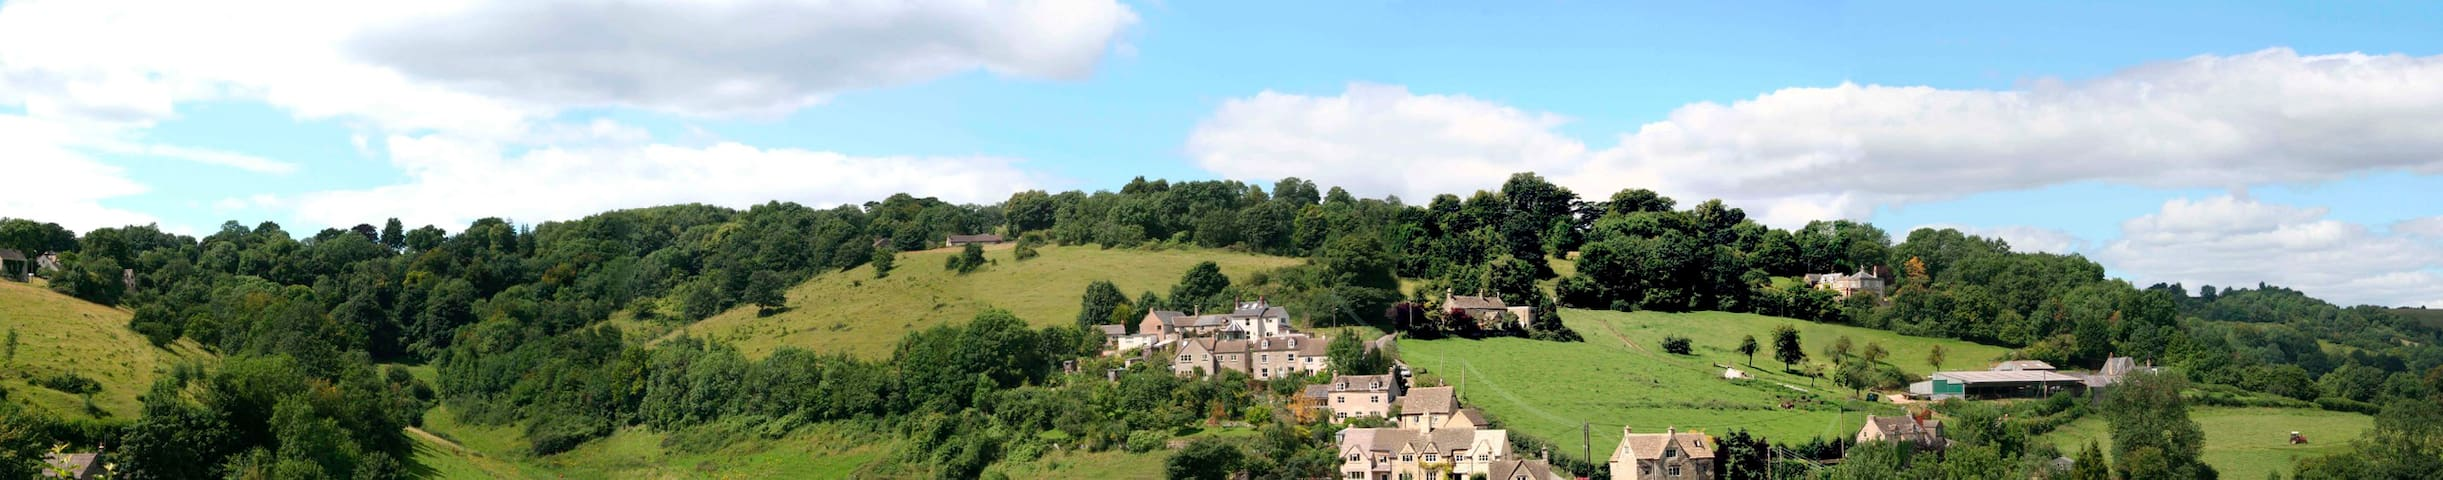 The Yew Tree Bed & Breakfast - Brimscombe - Bed & Breakfast